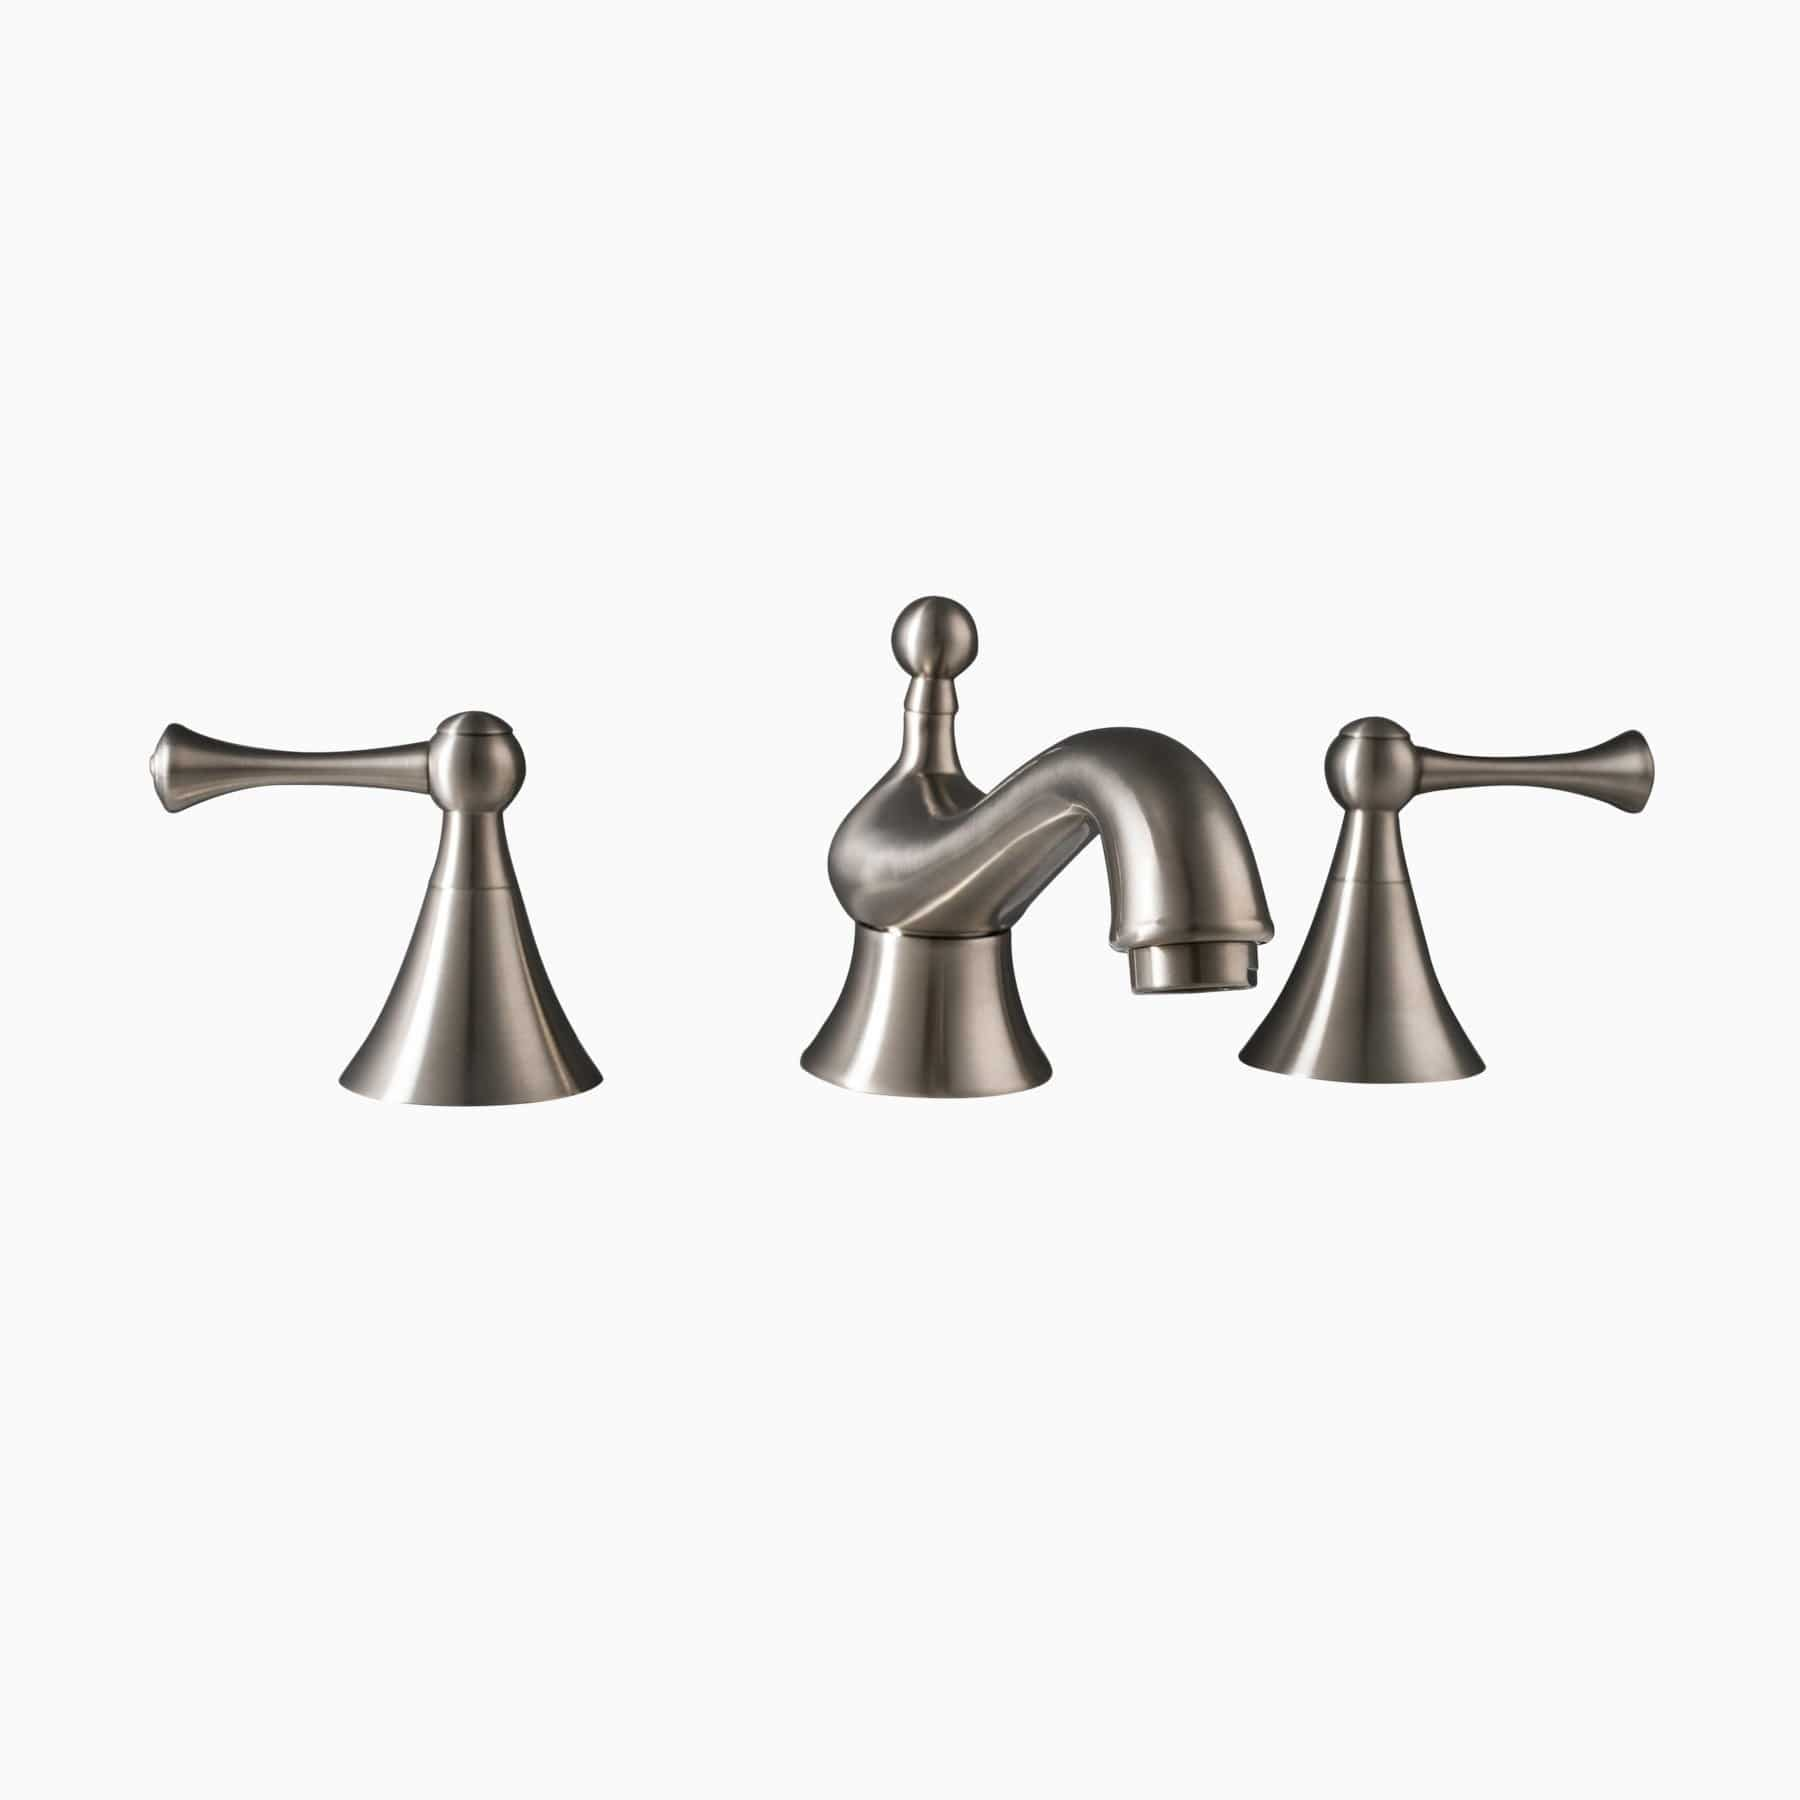 Andante Widespread Sink Faucet from Maykke